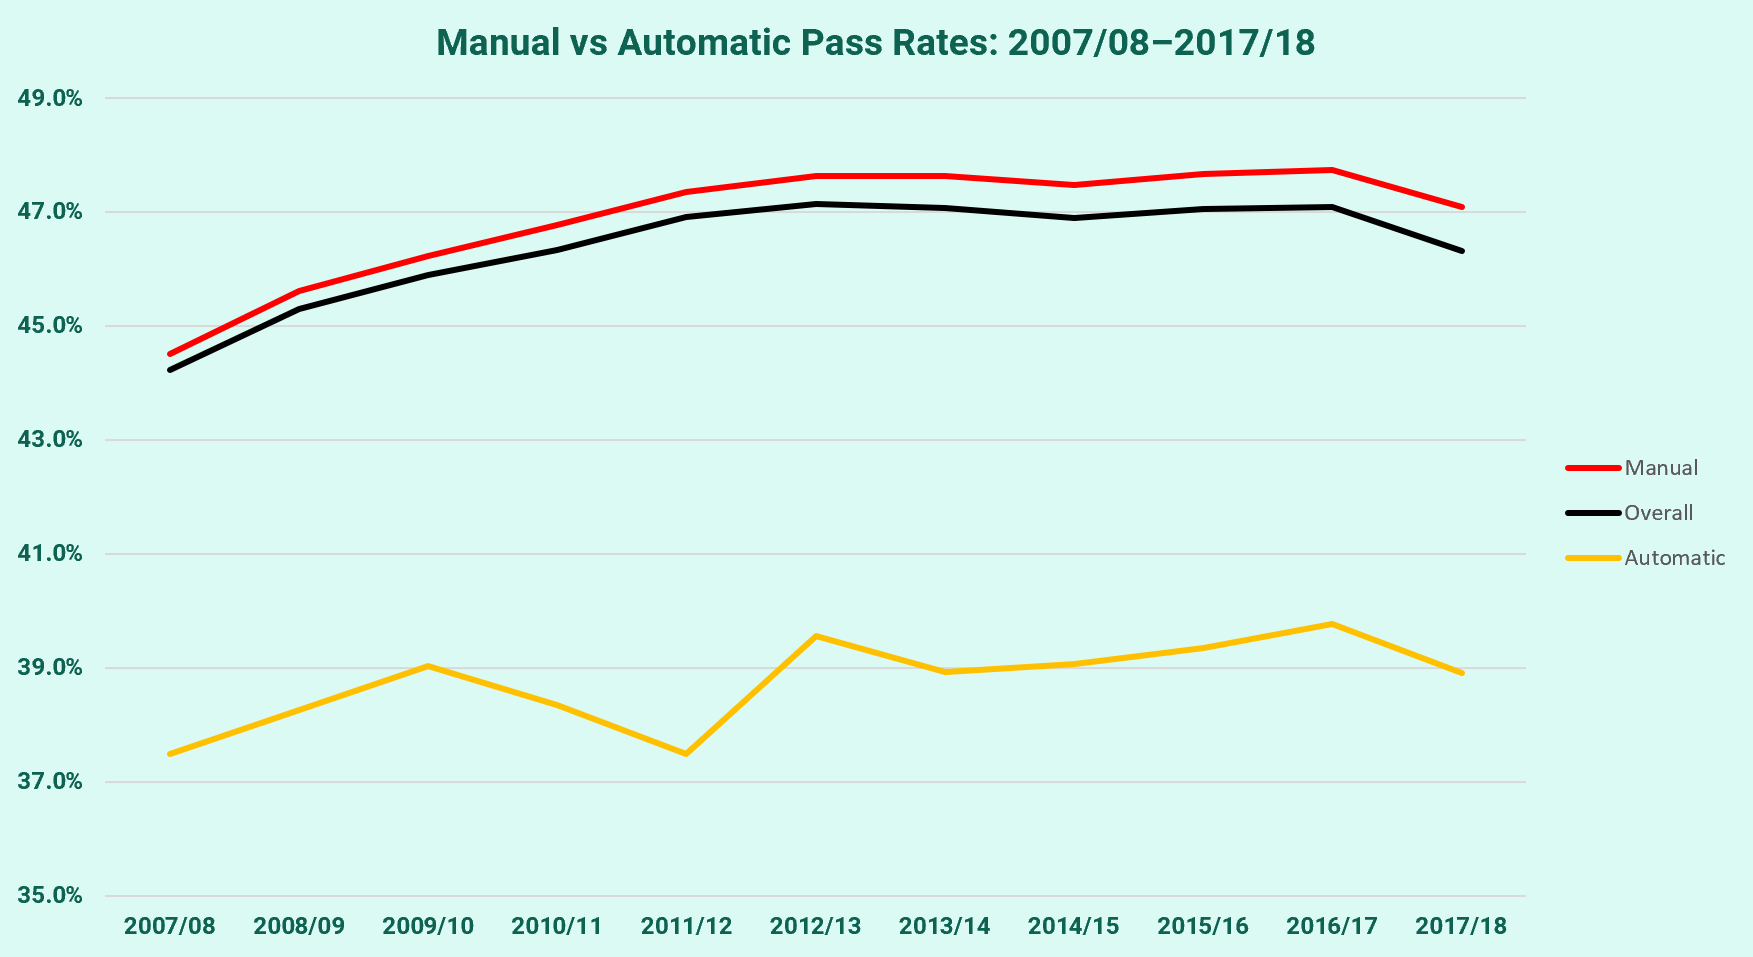 Manual and Automatic Pass Rates 2007/08-2017/18